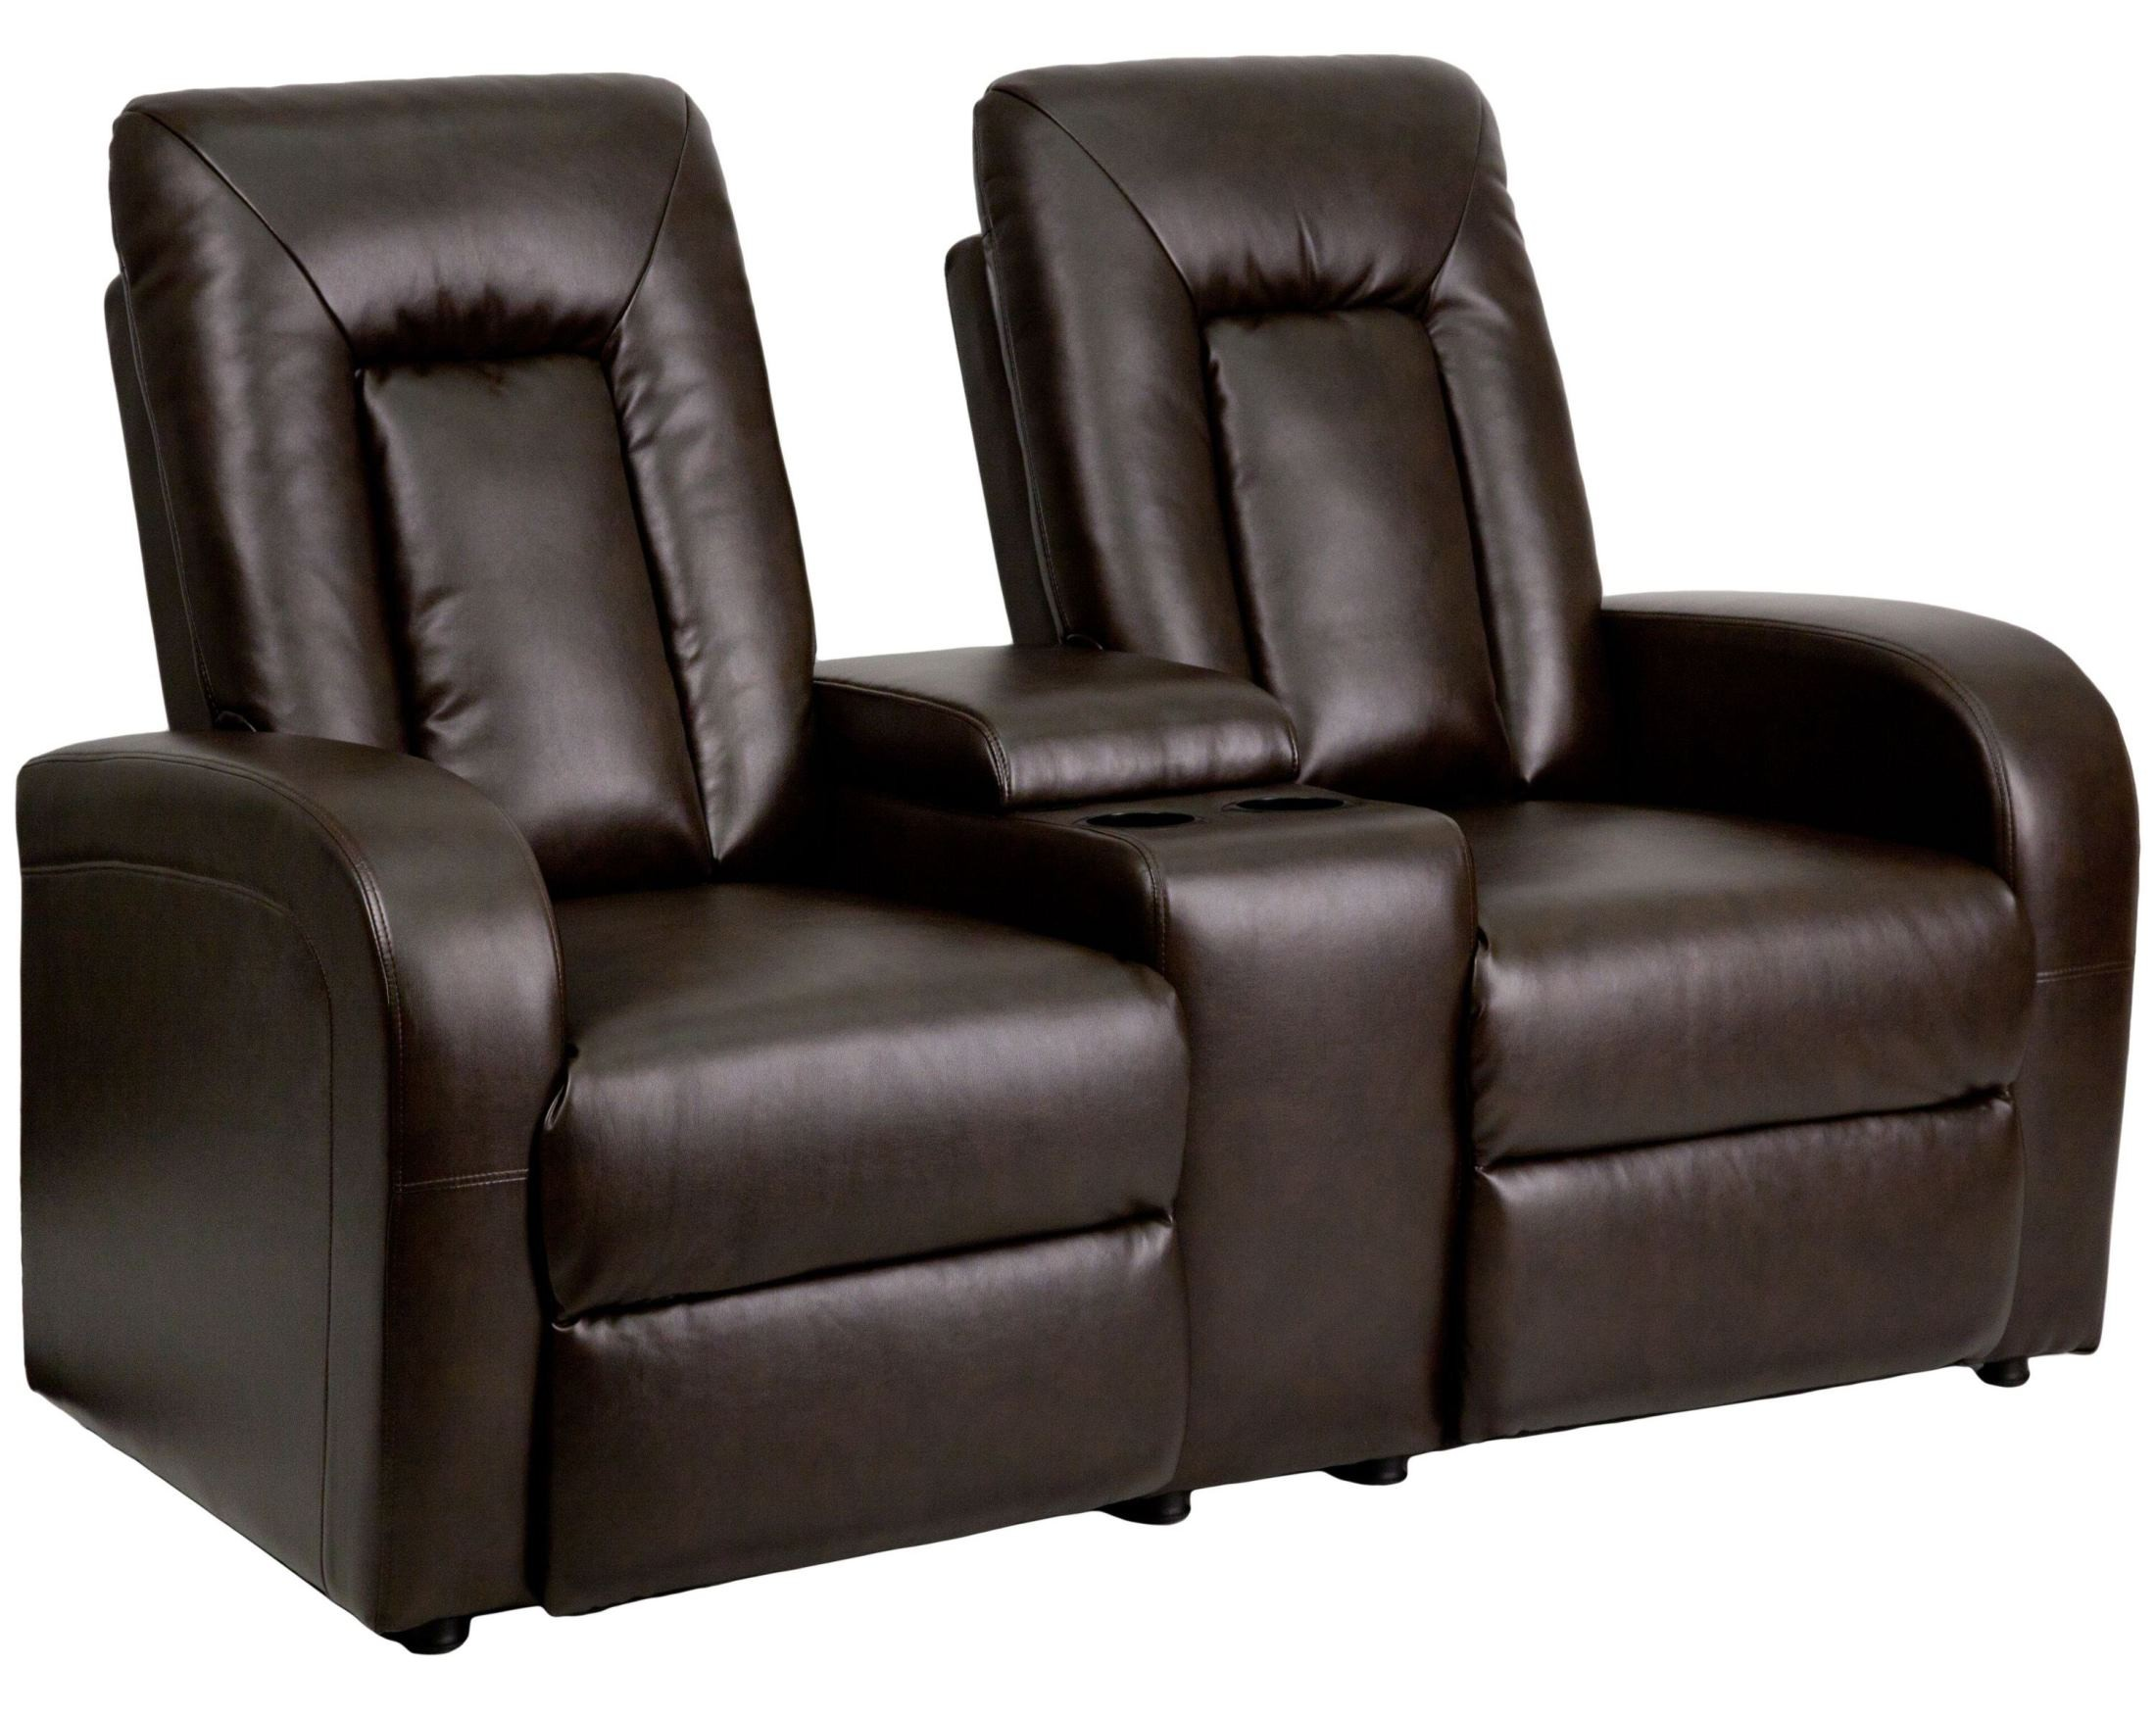 Brown Leather 2 Seat Home Theater Console Recliner From